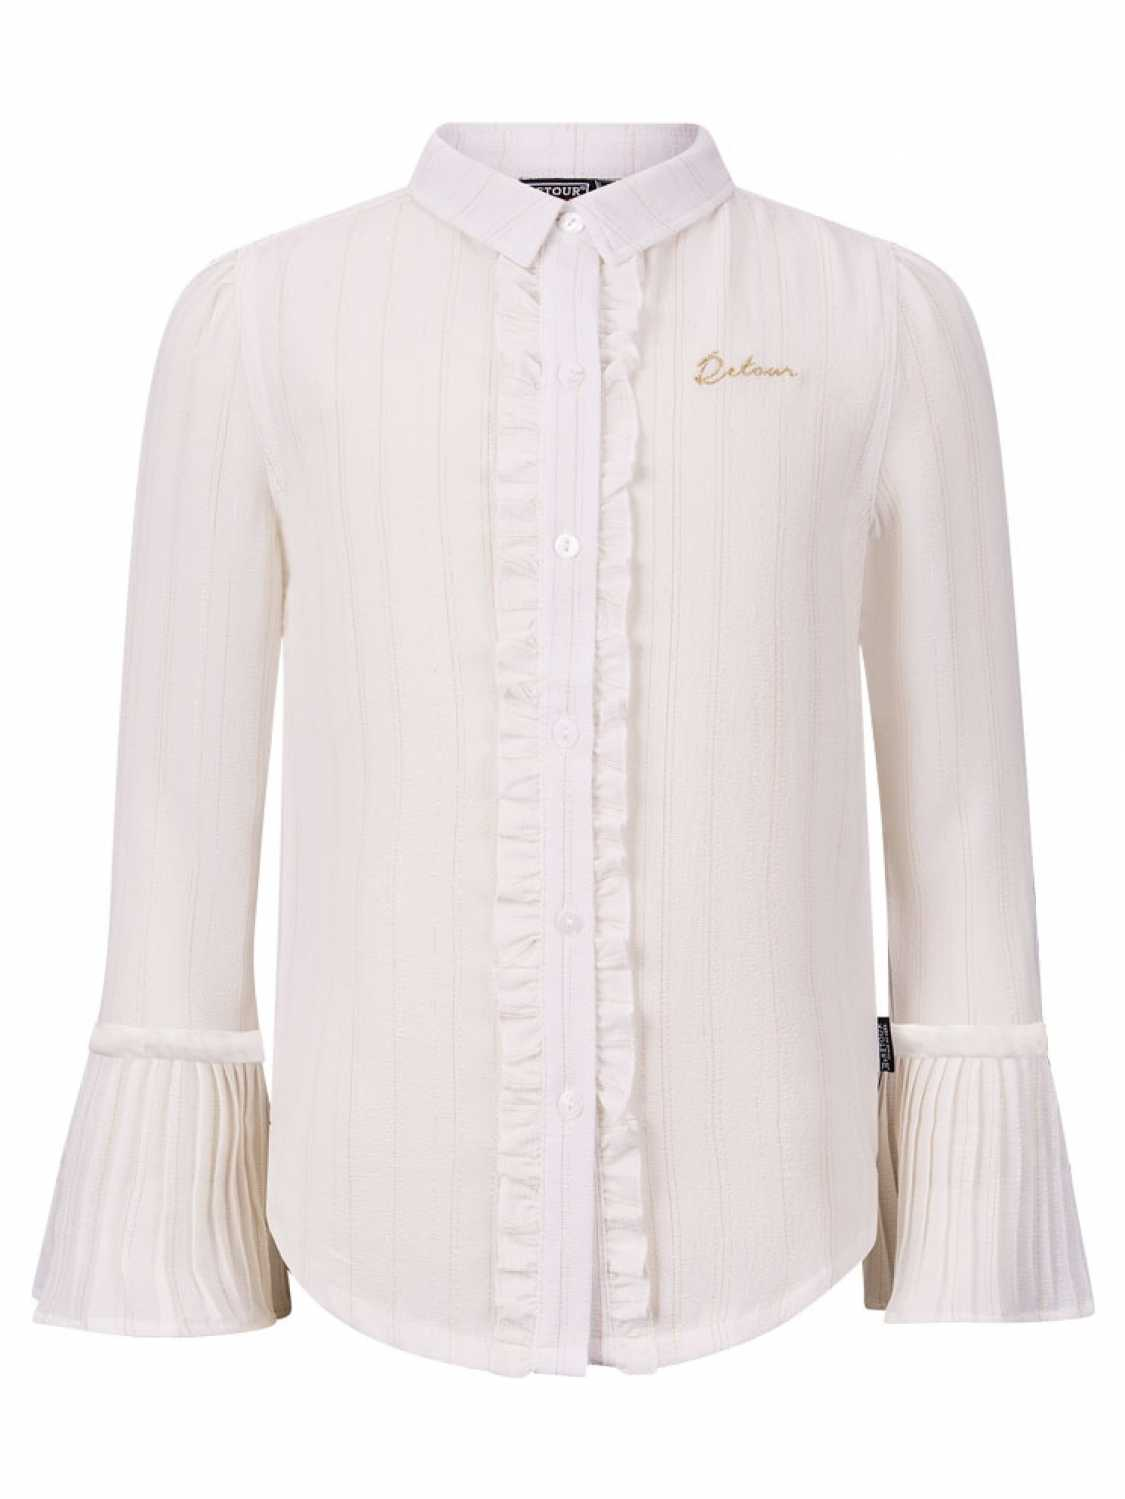 Retour Denim Blouse lange mouw - meisjes - Off White -